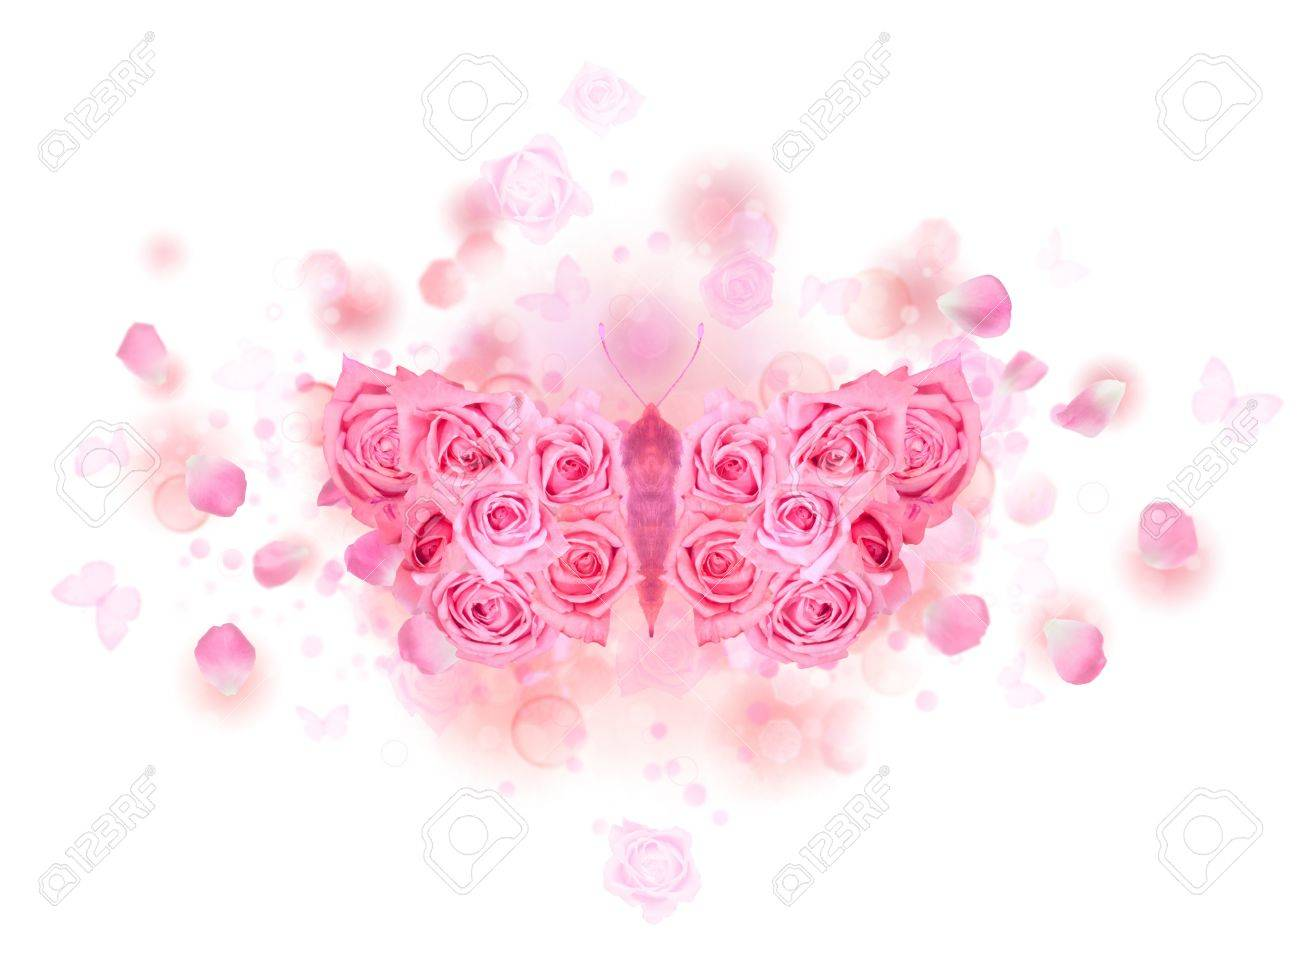 Mirrored butterfly with spreading wings, made of pink roses, on a soft background of bokeh particles, flying petals and rose buds, isolated on white Stock Photo - 14604337